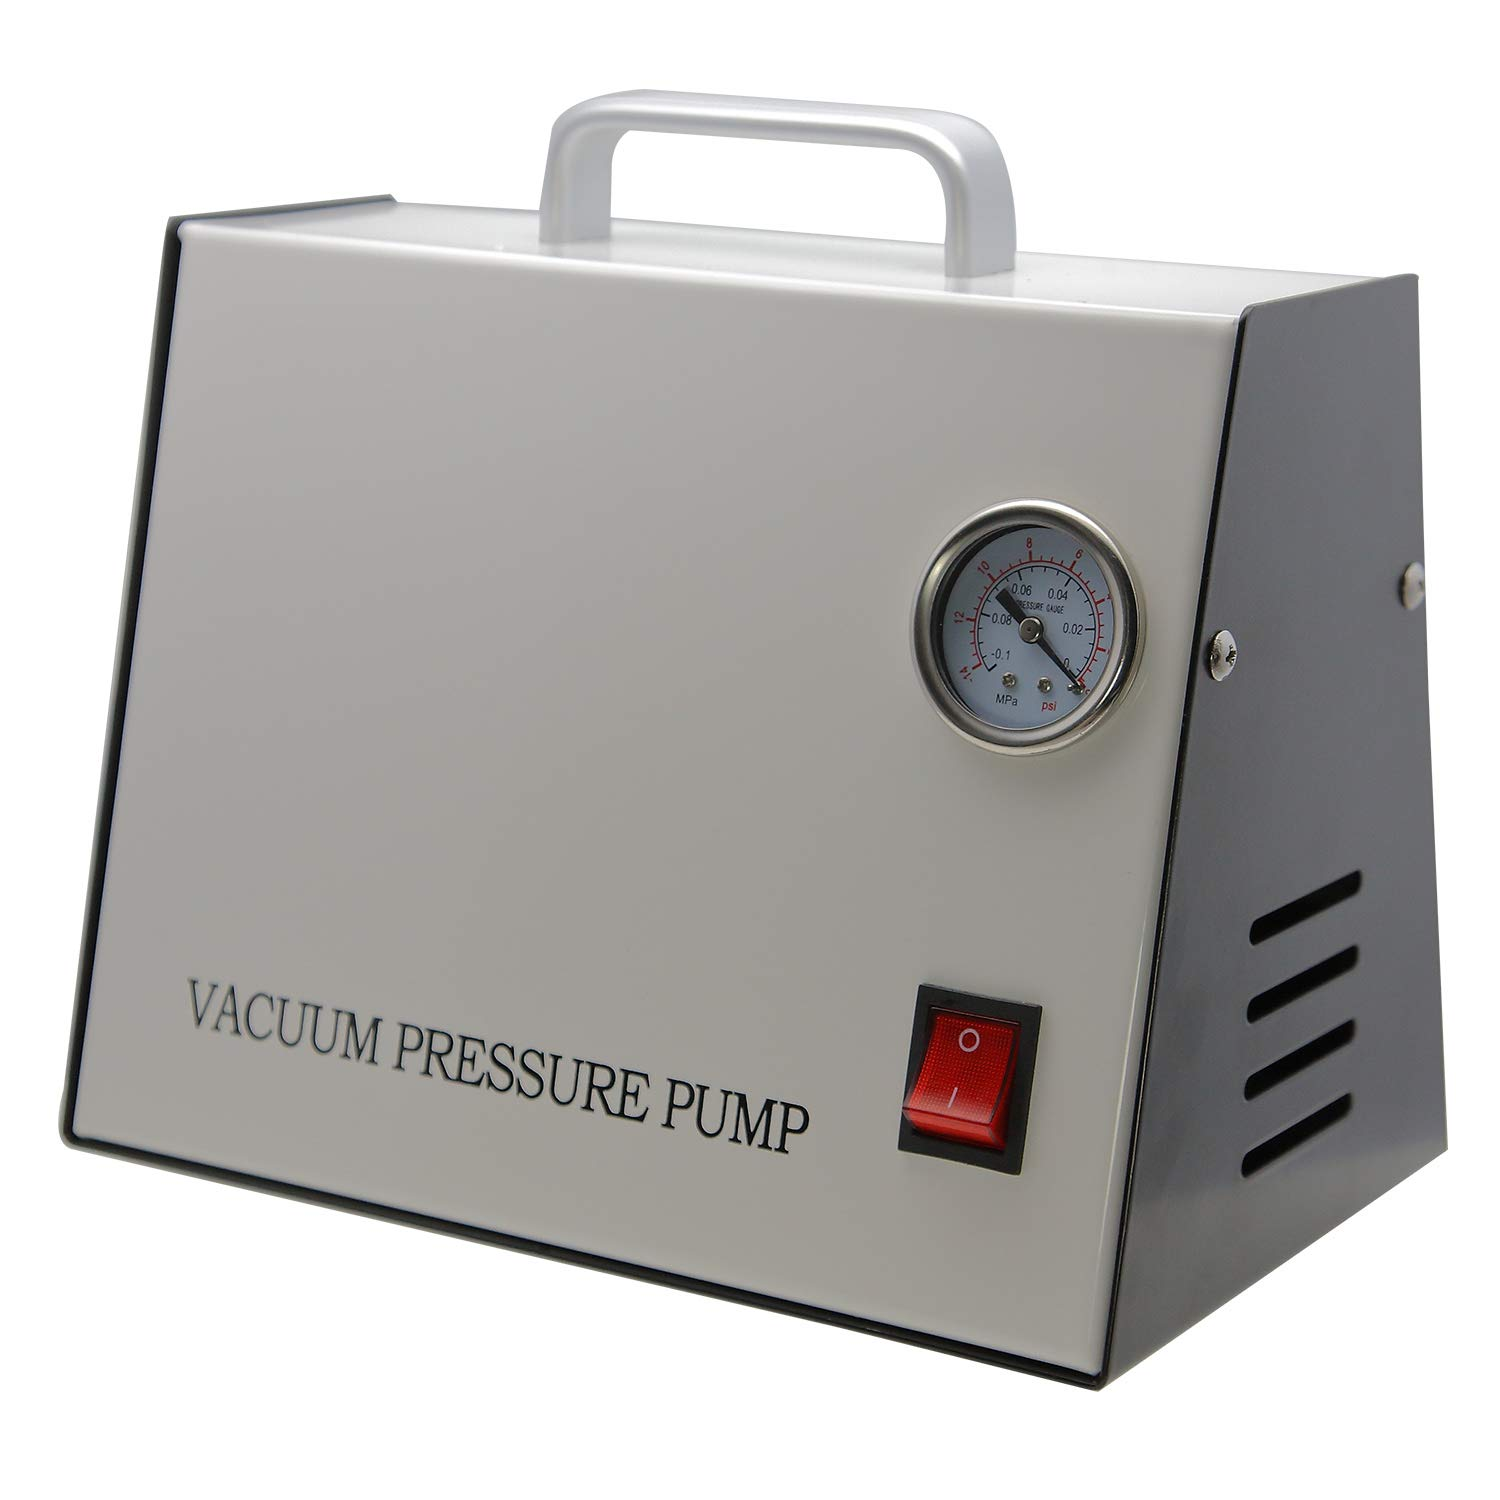 AMTAST AC110V 60Hz Oil Free Vacuum Pressure Pump No Pollution Anticorrosive Durable Oilless Vacuum Pump Extraction Vacuum Compression for Medical Science Lab Workshop 15 LPM